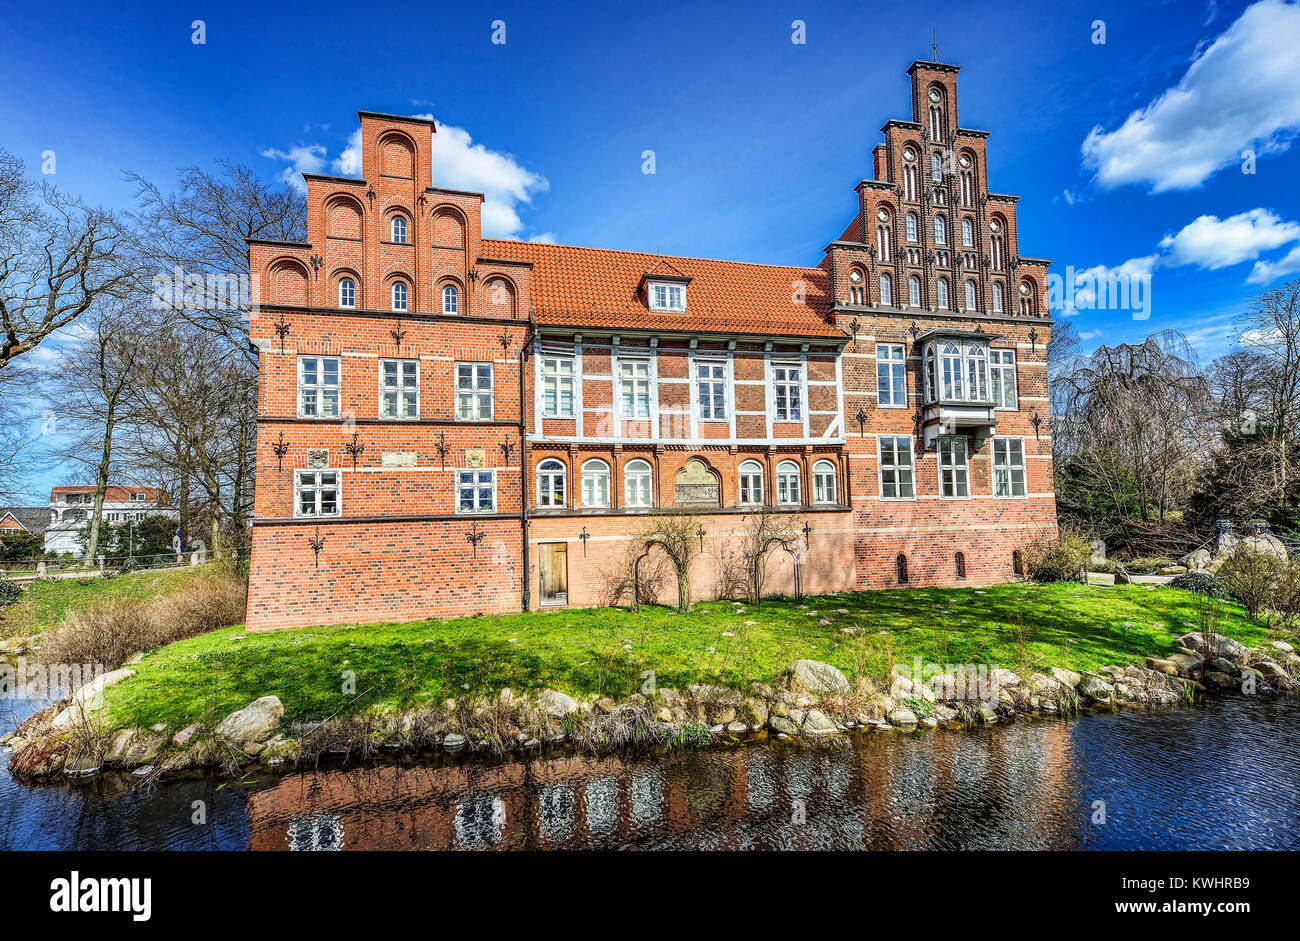 Badewannendoktor Hamburg Bergedorf The Bergedorfer Castle In Hamburg Germany Europe Das